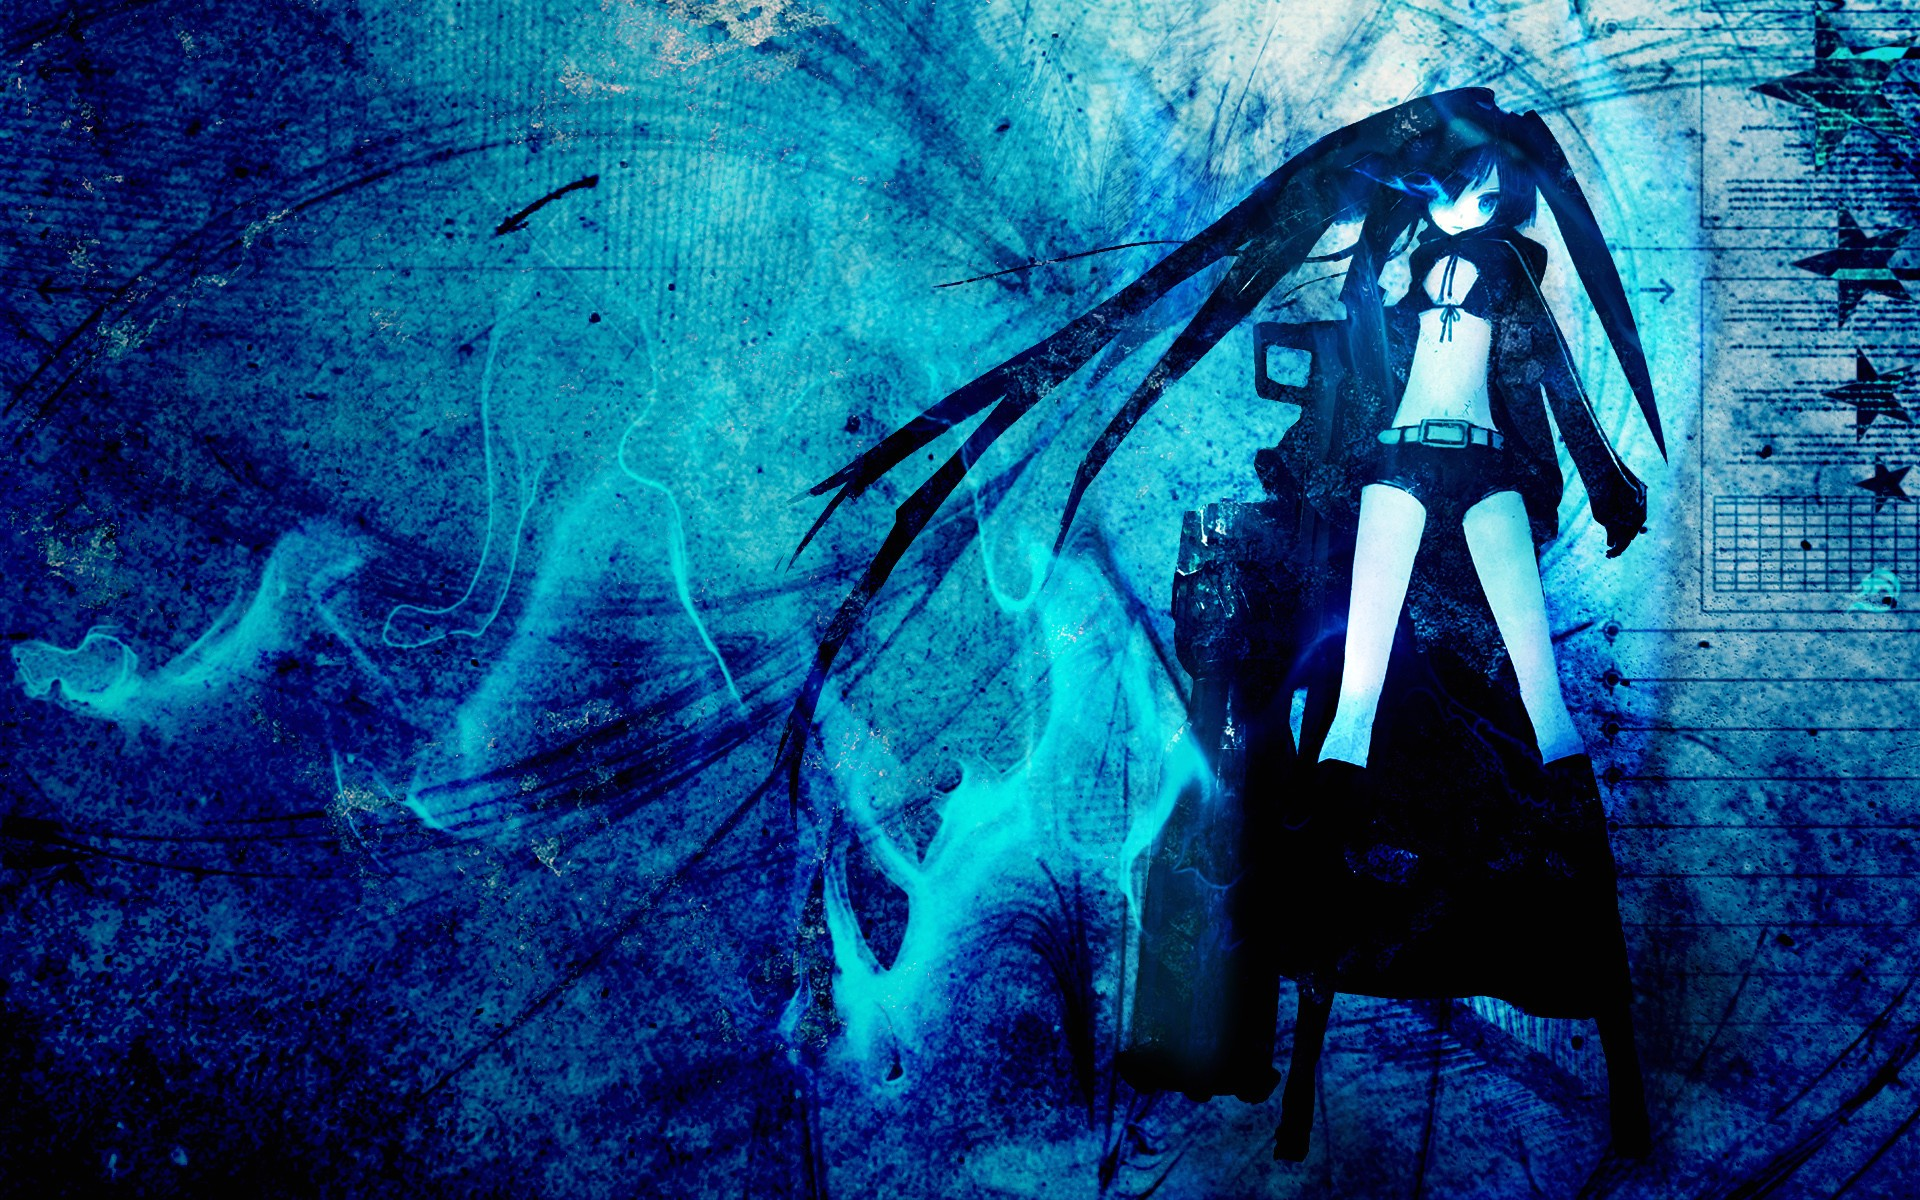 Anime Wallpapers Hd 4k Download For Mobile Iphone Pc Black Rock Shooter Wallpaper Laptop 45121 Hd Wallpaper Backgrounds Download